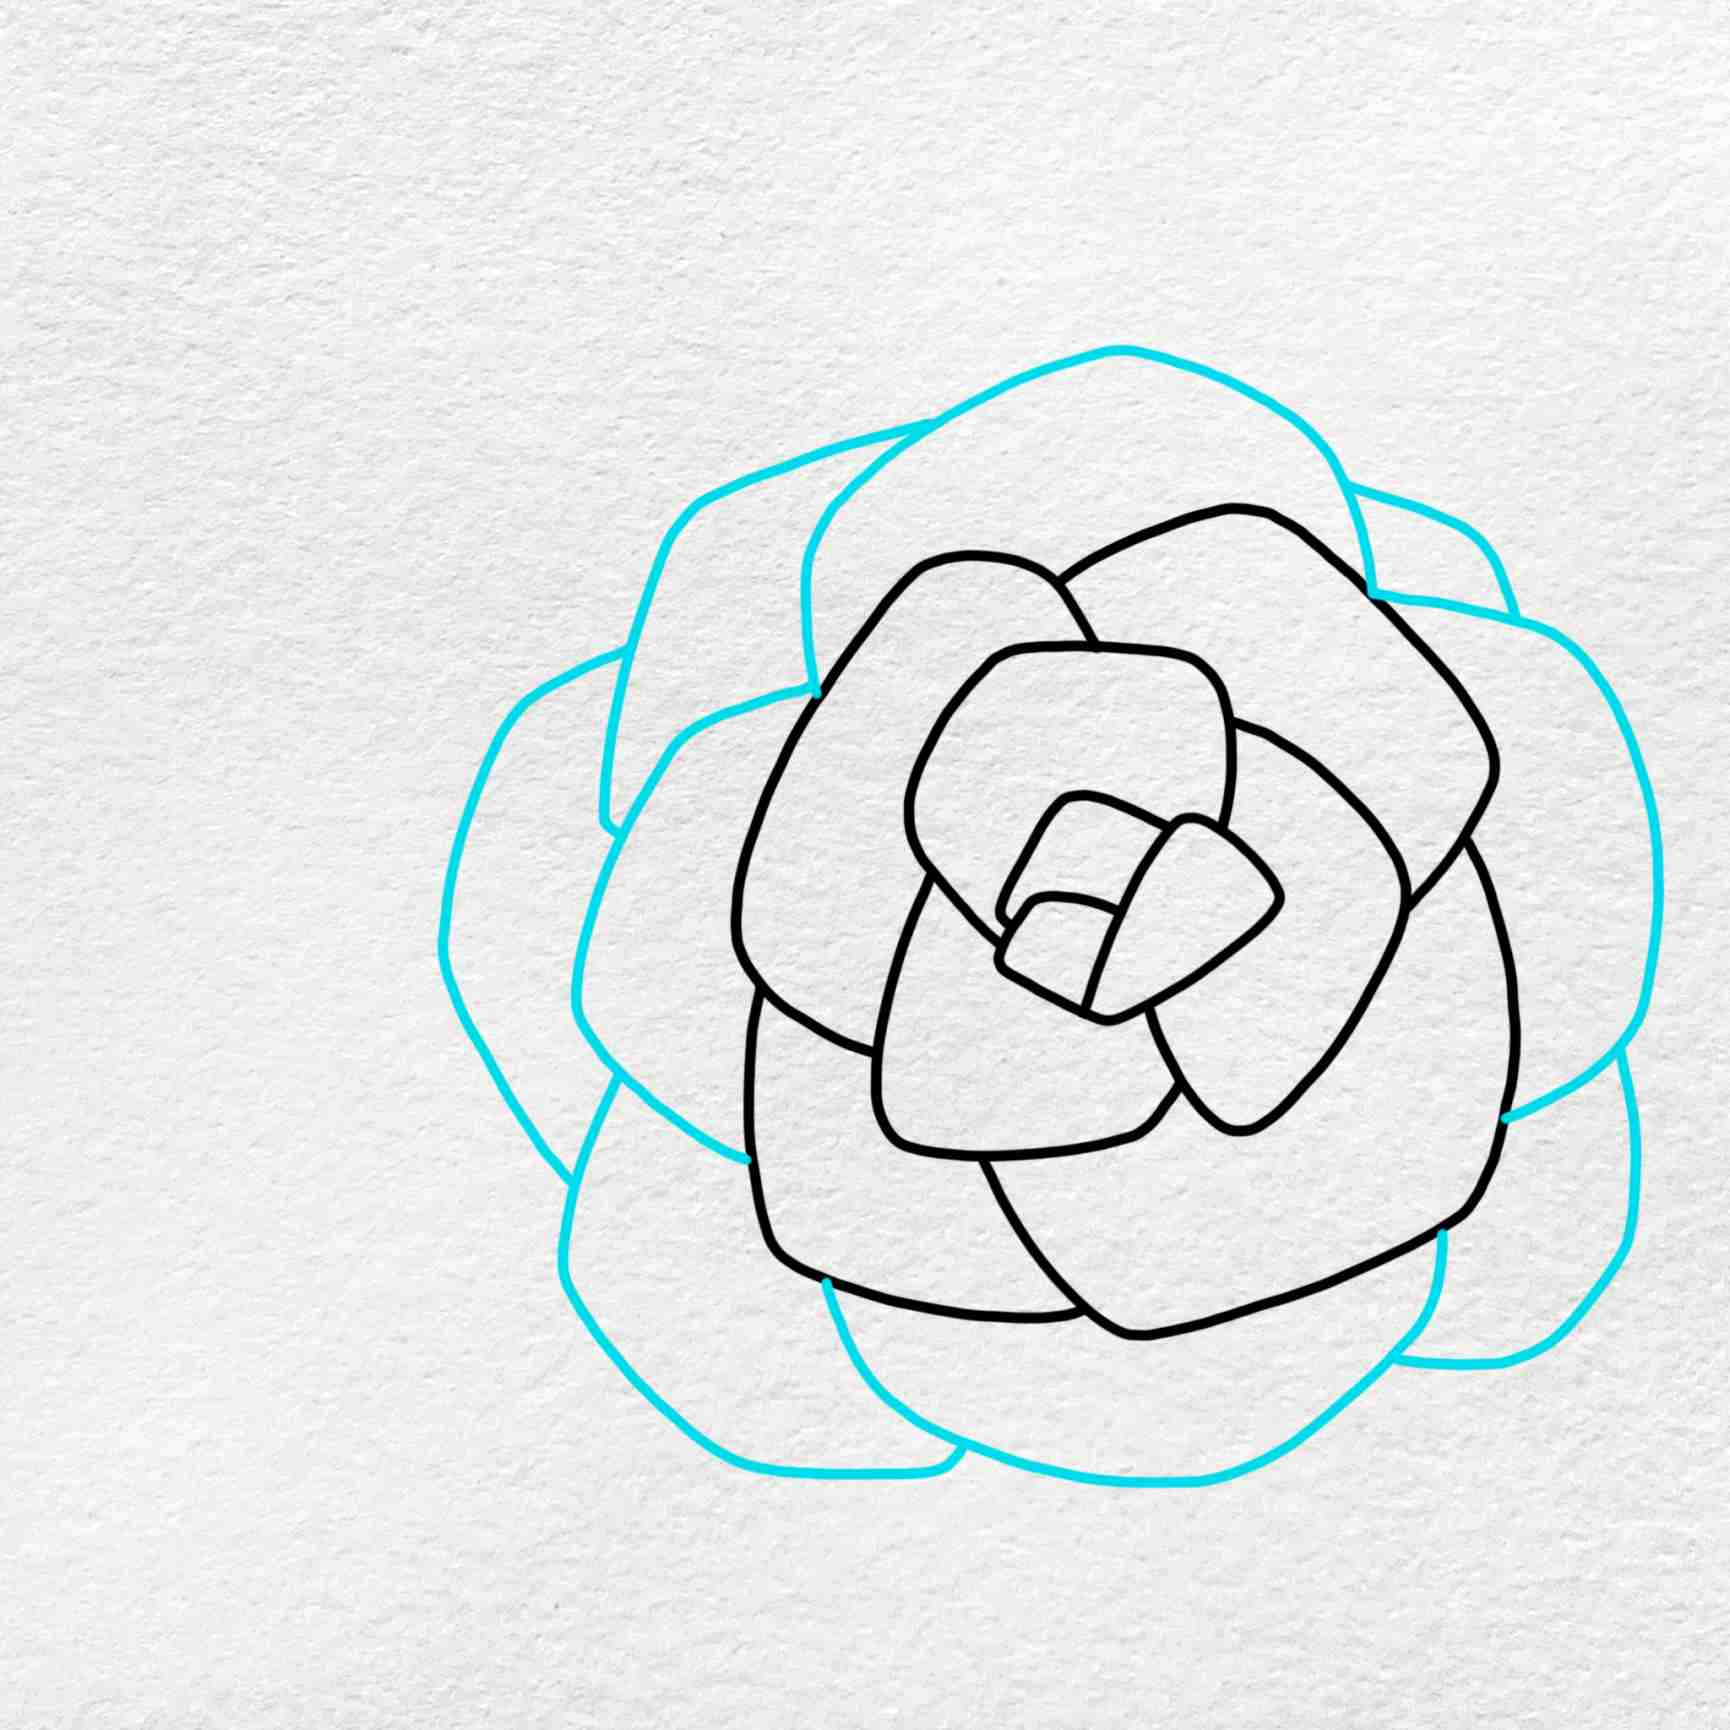 How To Draw A Rose For Beginners: Step 4